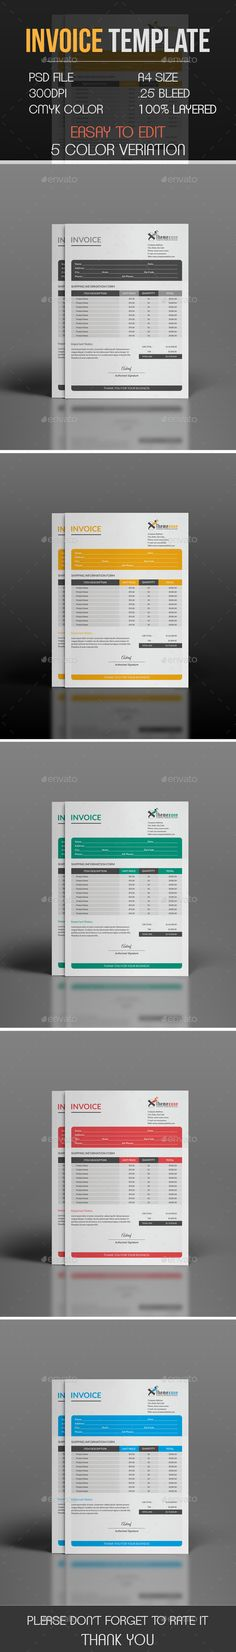 Invoice Invoice design, Letterhead and Proposal templates - Download Invoice